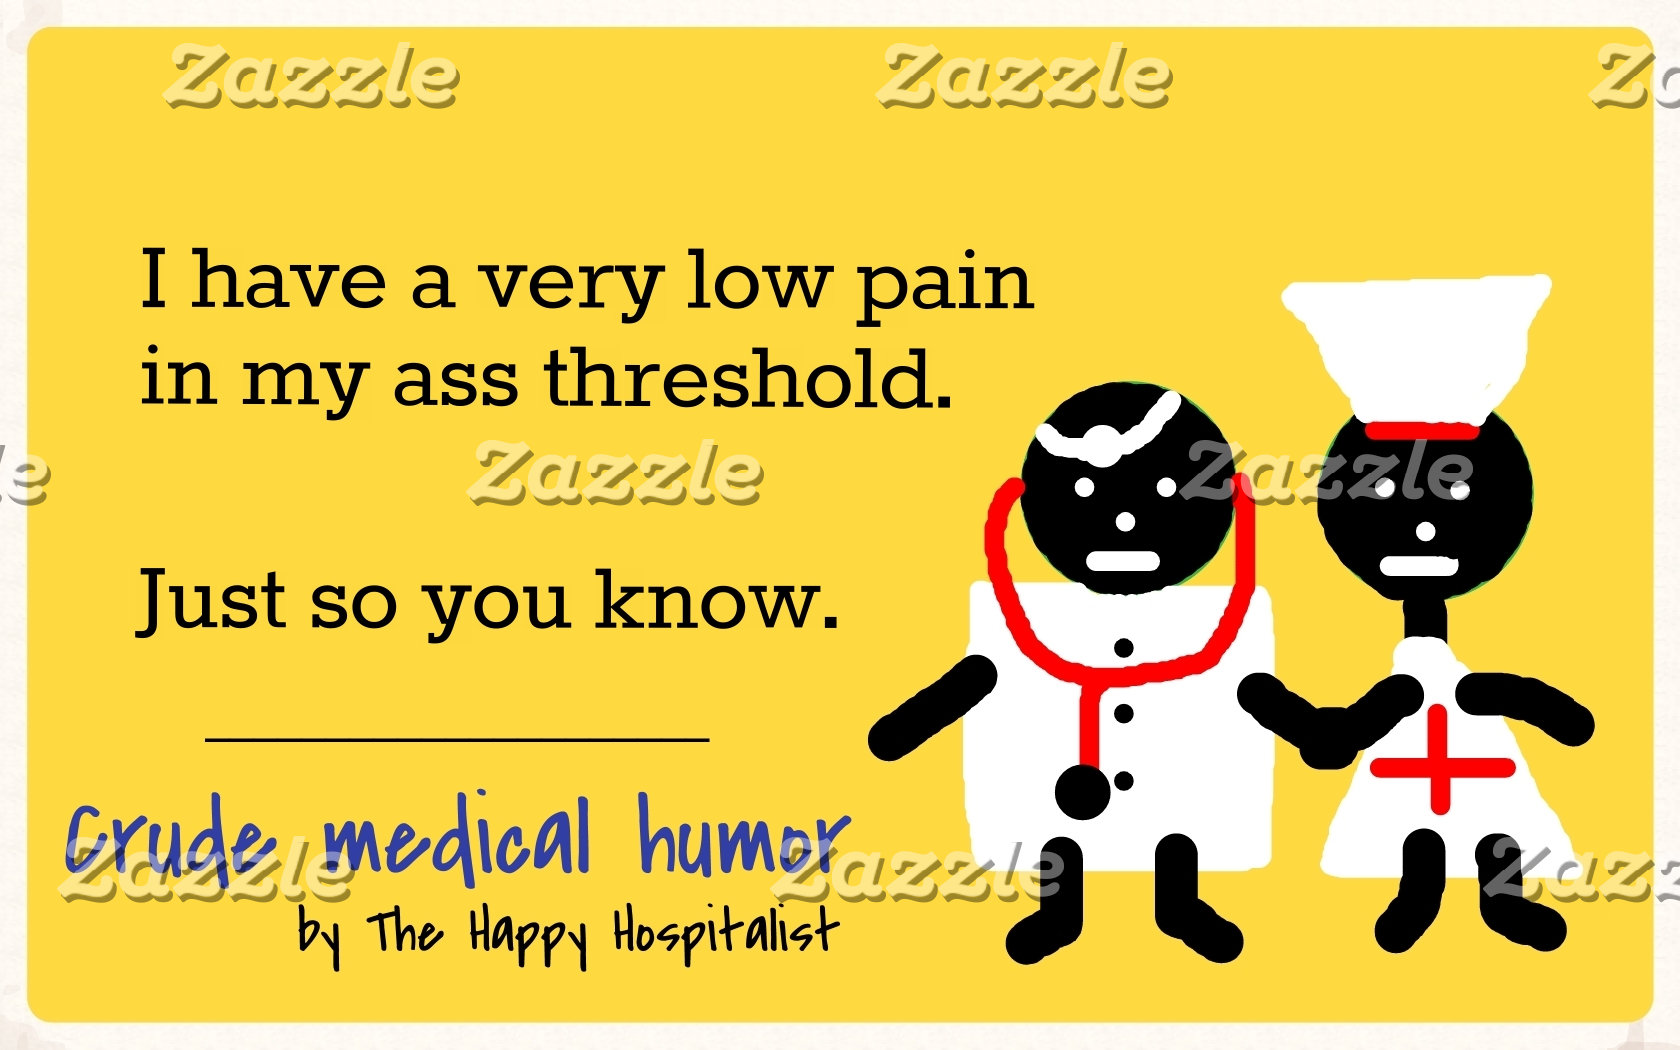 I have a very low pain in my ass threshold...